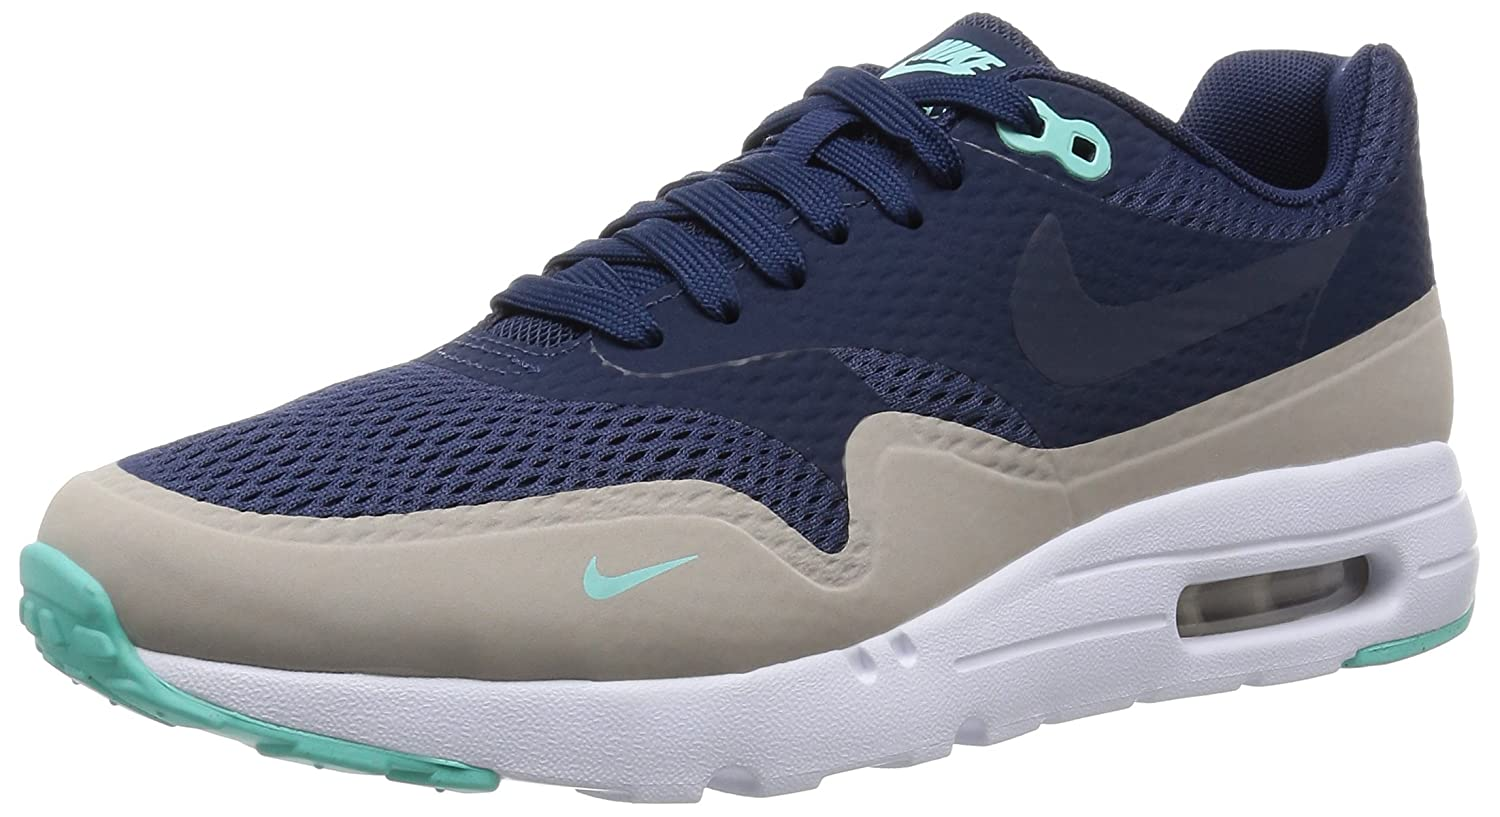 594b29932c Amazon.com | NIKE Air Max 1 Ultra Essential Men's 819476-400 Running Shoes  (8) | Running